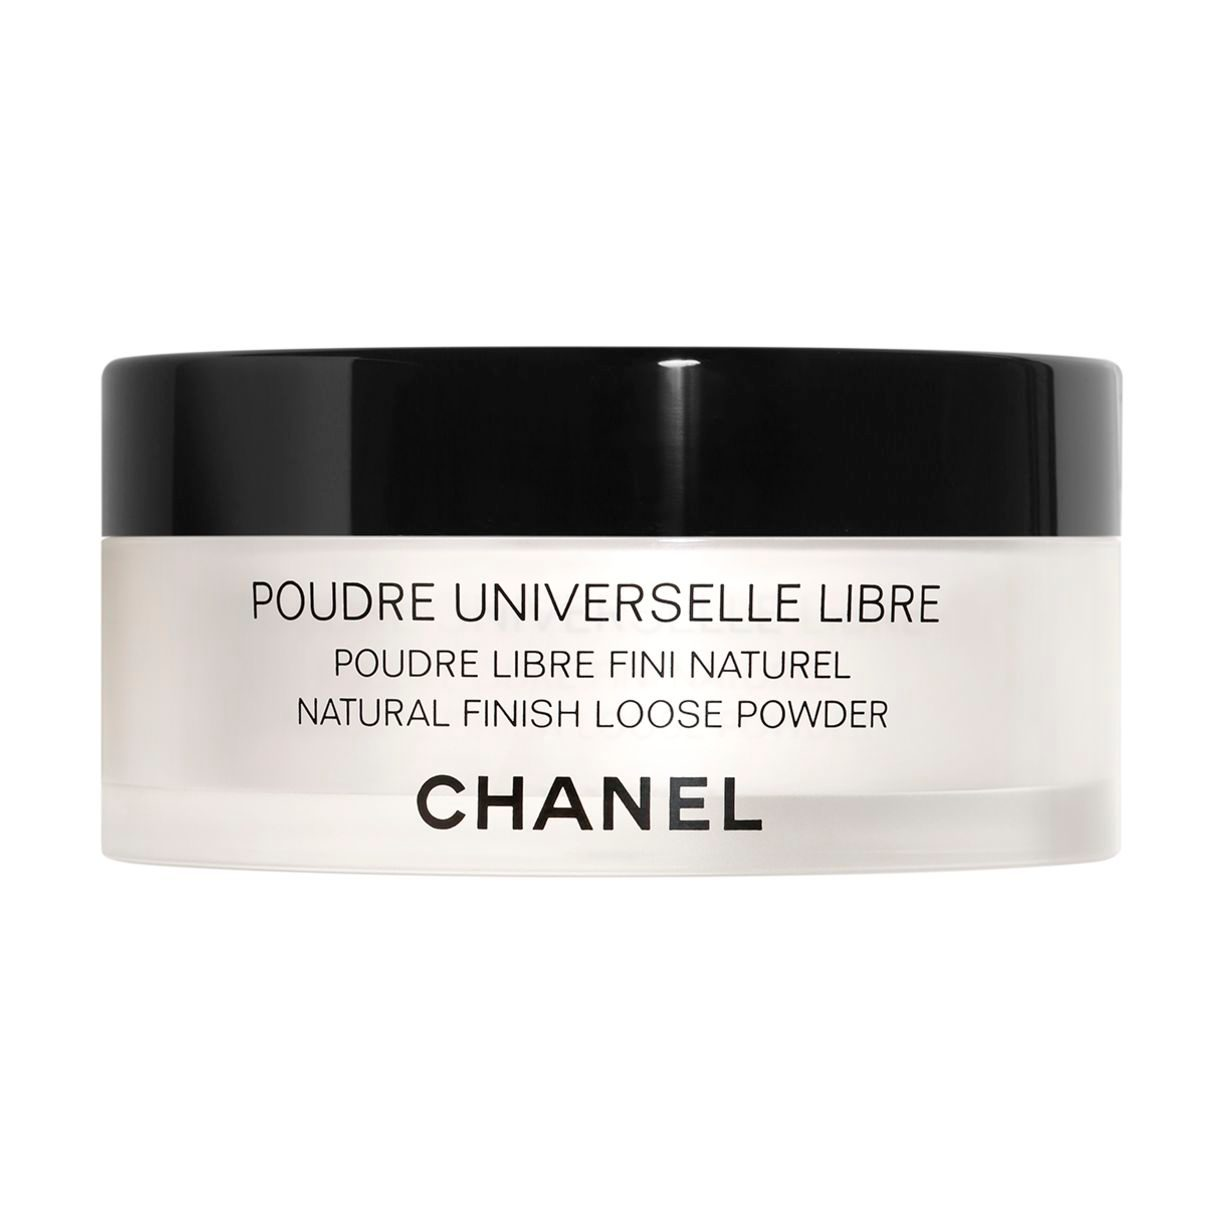 POUDRE UNIVERSELLE LIBRE NATURAL FINISH LOOSE POWDER 10 - LIMPIDE